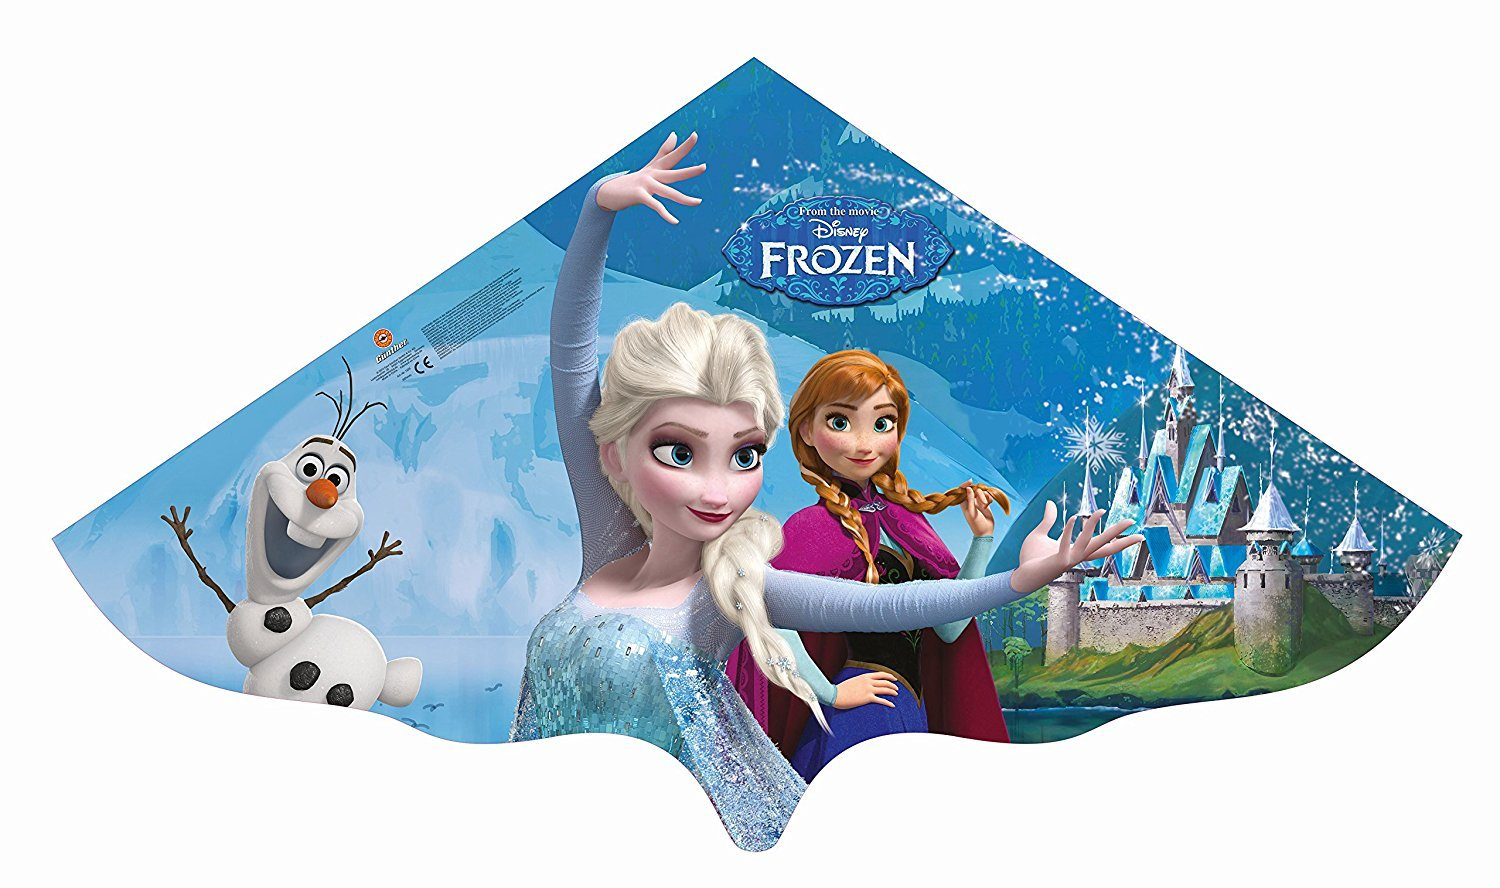 Günther 1220 - Kinderdrachen Disneys Frozen Elsa, ca. 115 x 63 cm Guenther - 1220